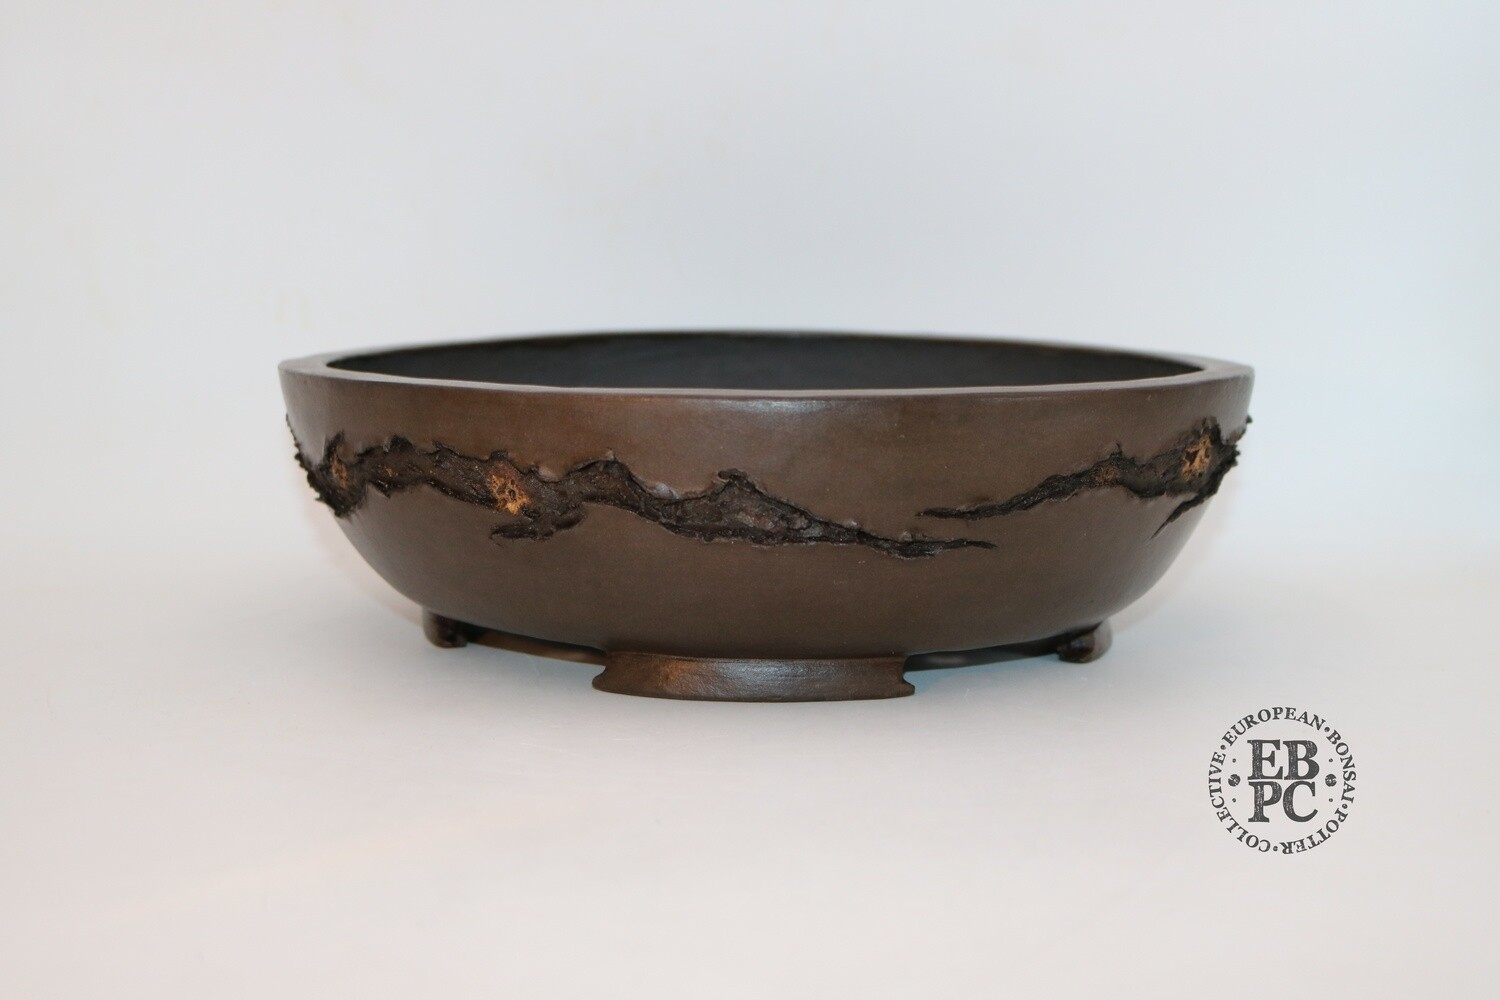 SOLD - M. J. G. Ceramica - 31.1cm; Unglazed; Dark Chocolate Finish; Round; Textured; Mushikui; Maria Gonzalez